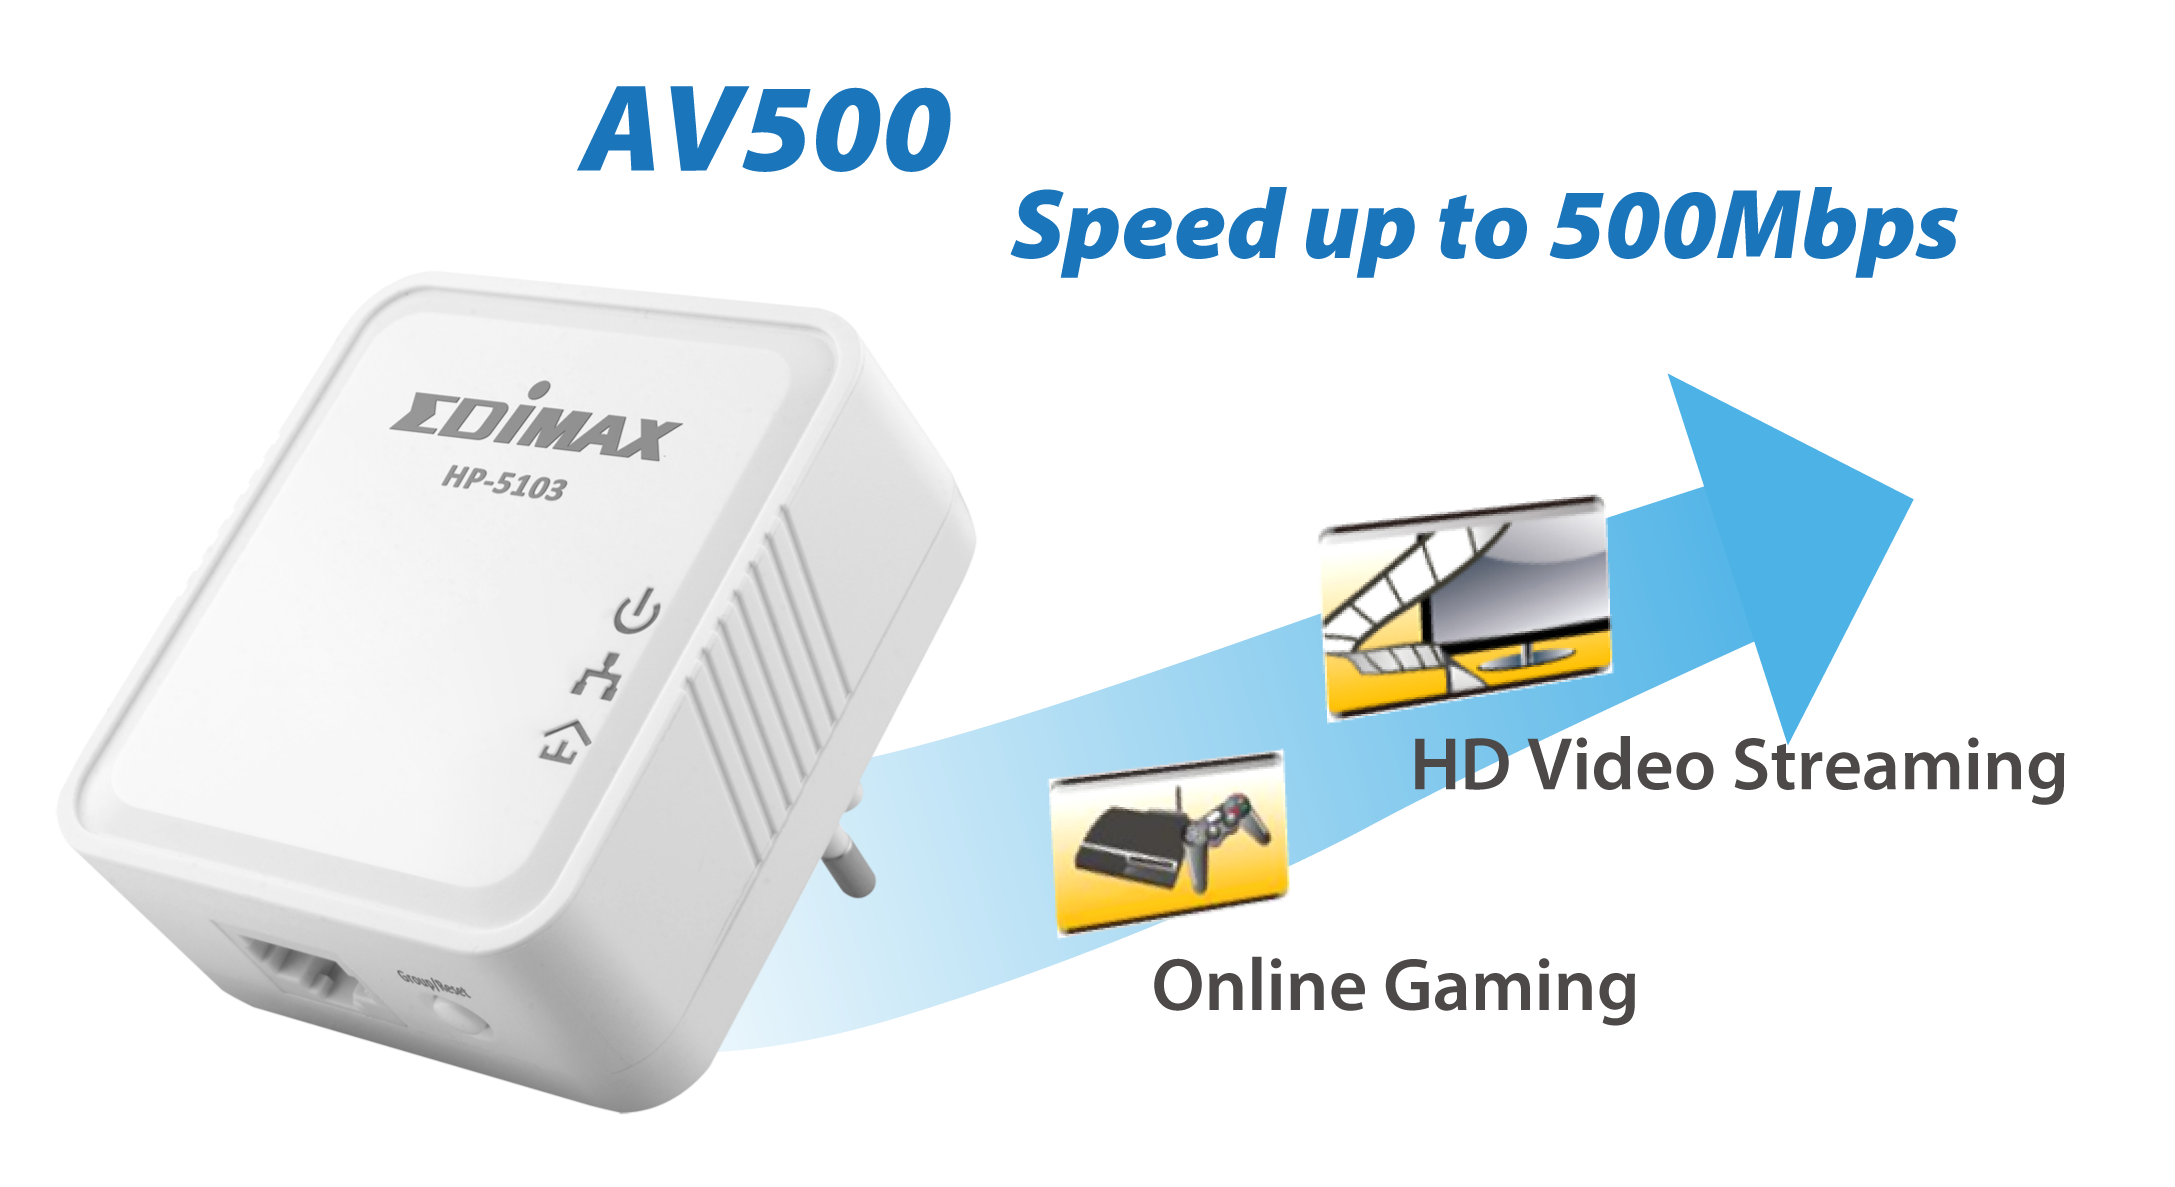 Edimax AV500 Nano PowerLine Adapter HP-5103_AV500_high-speed_HD_video_streaming.png